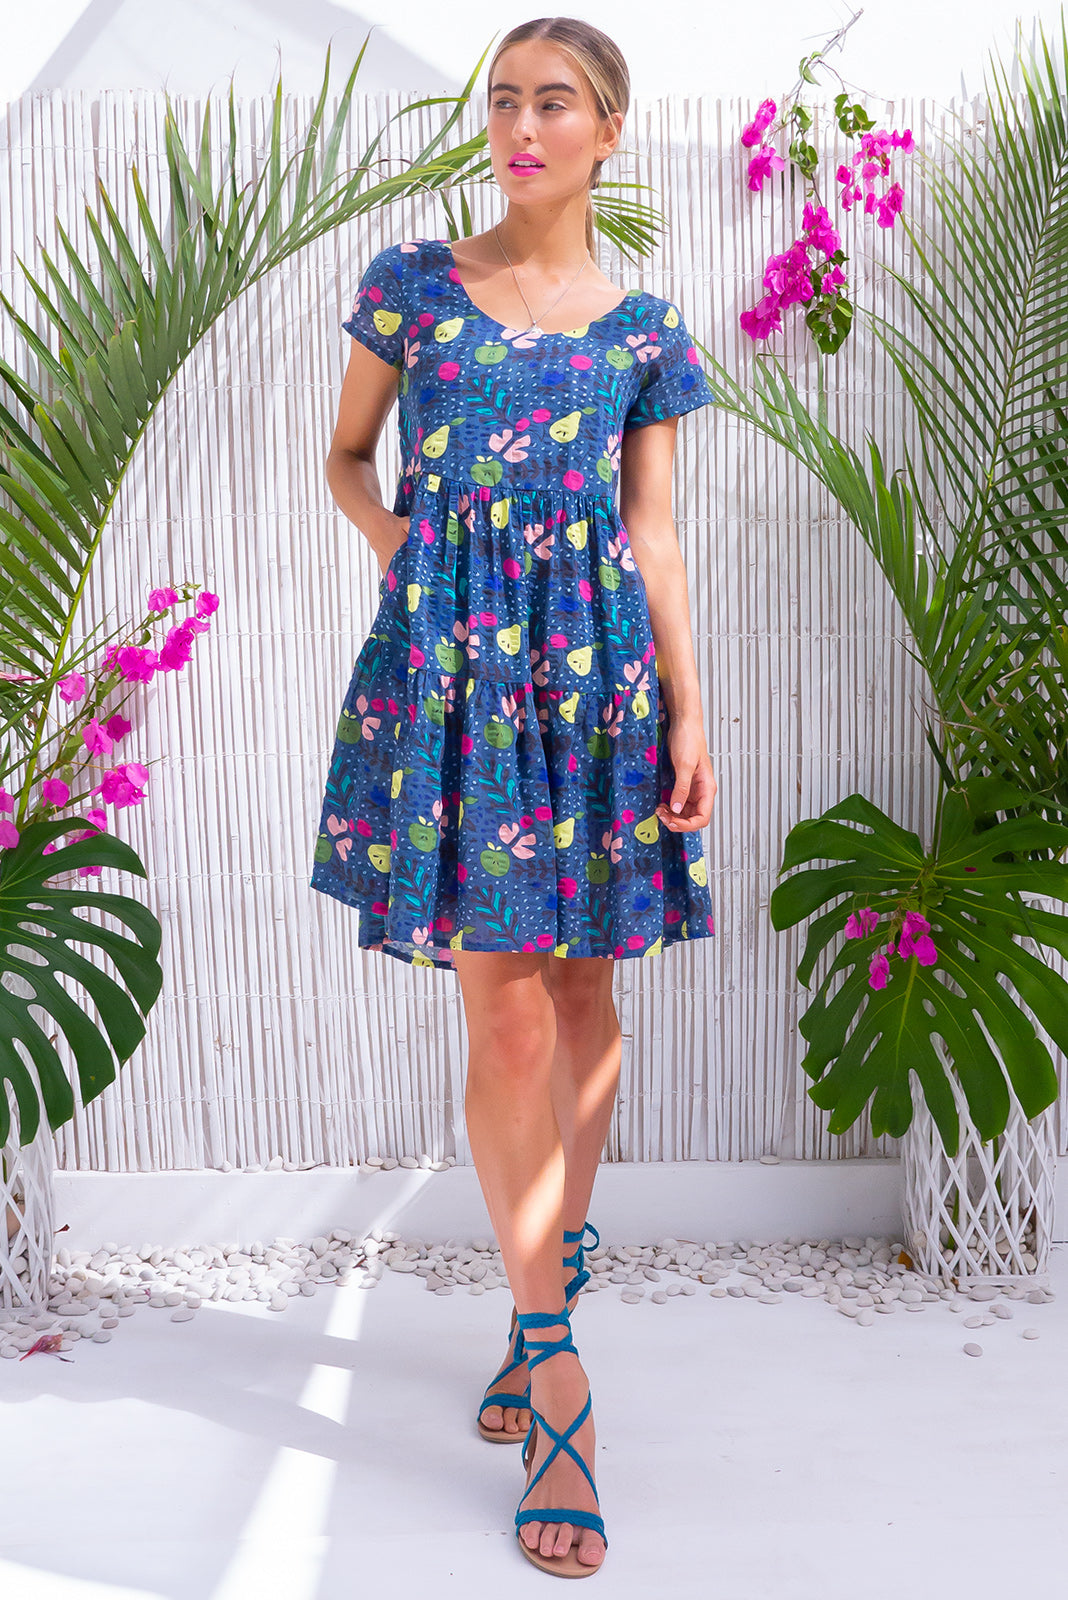 Lulu Elle Fruity Navy Mini Dress, bohemian summer style, vintage inspired, floral print, side pockets.